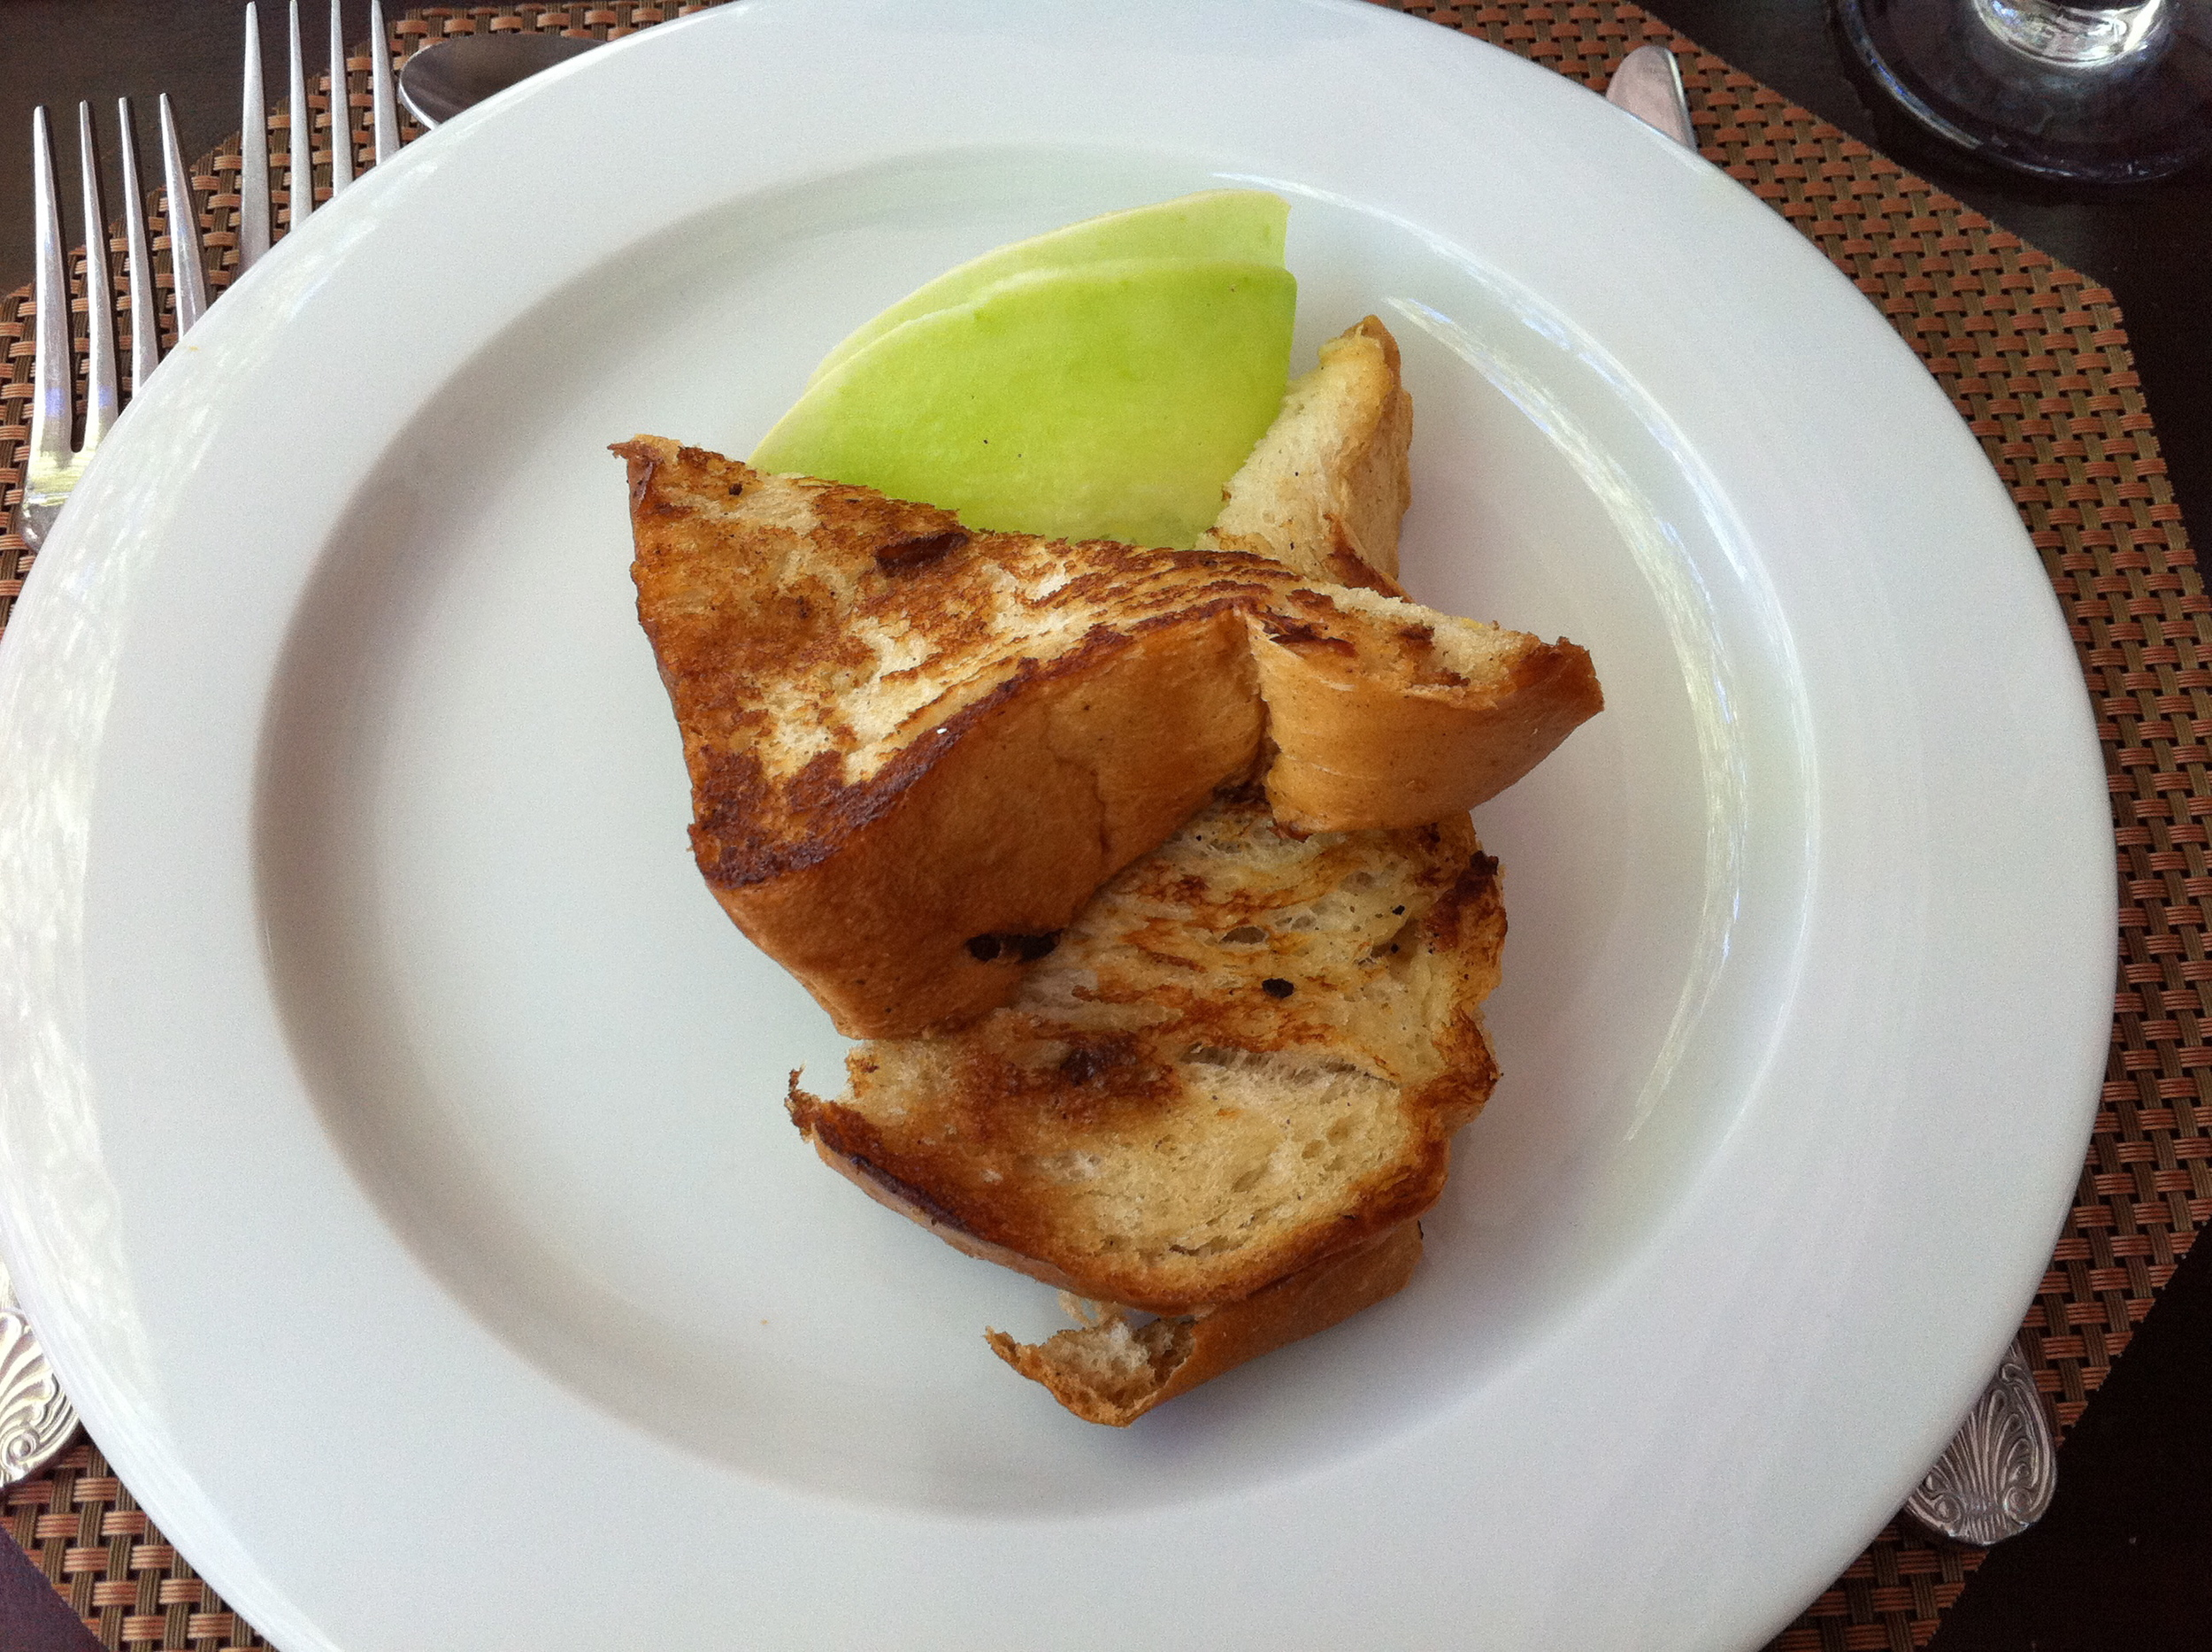 This Jamaican special, rum soaked toast, was a seriously strong breakfast and totally vegan!